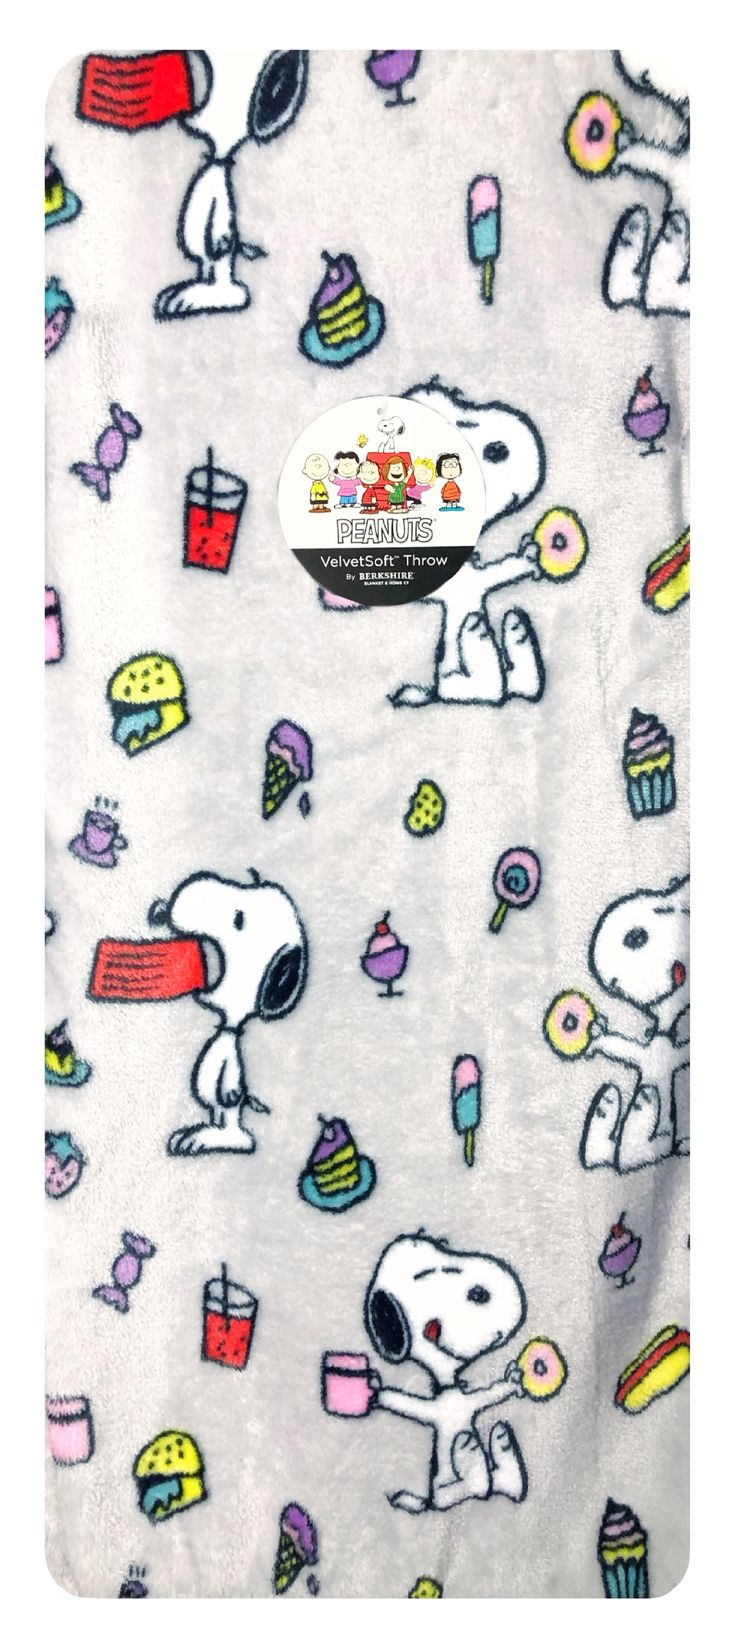 Berkshire snoopy with food plush throw blanket 55 x 70